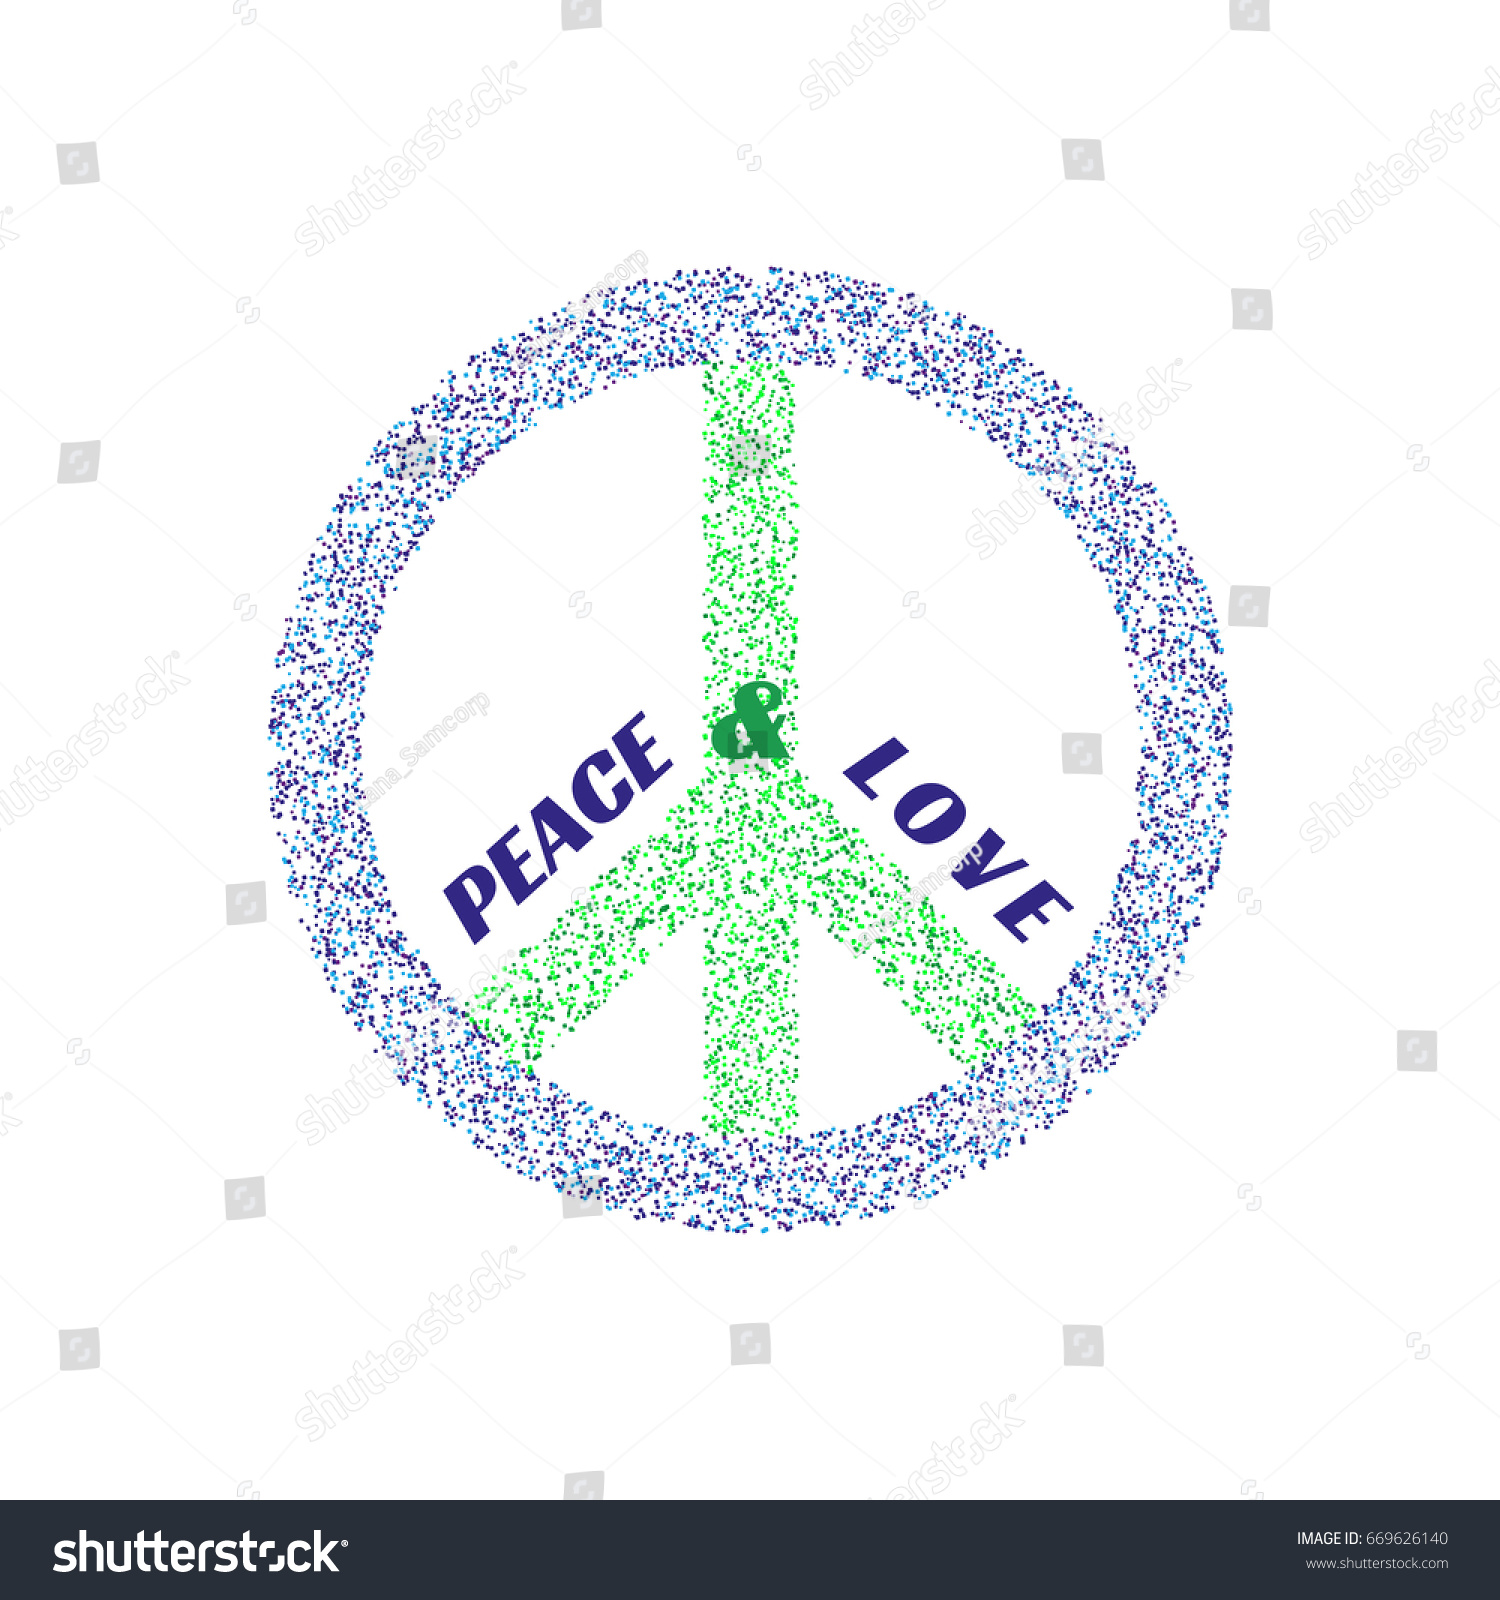 Peace symbol pacifist logo freedom concept stock illustration peace symbol pacifist logo freedom concept antiwar international movement emblem social protest biocorpaavc